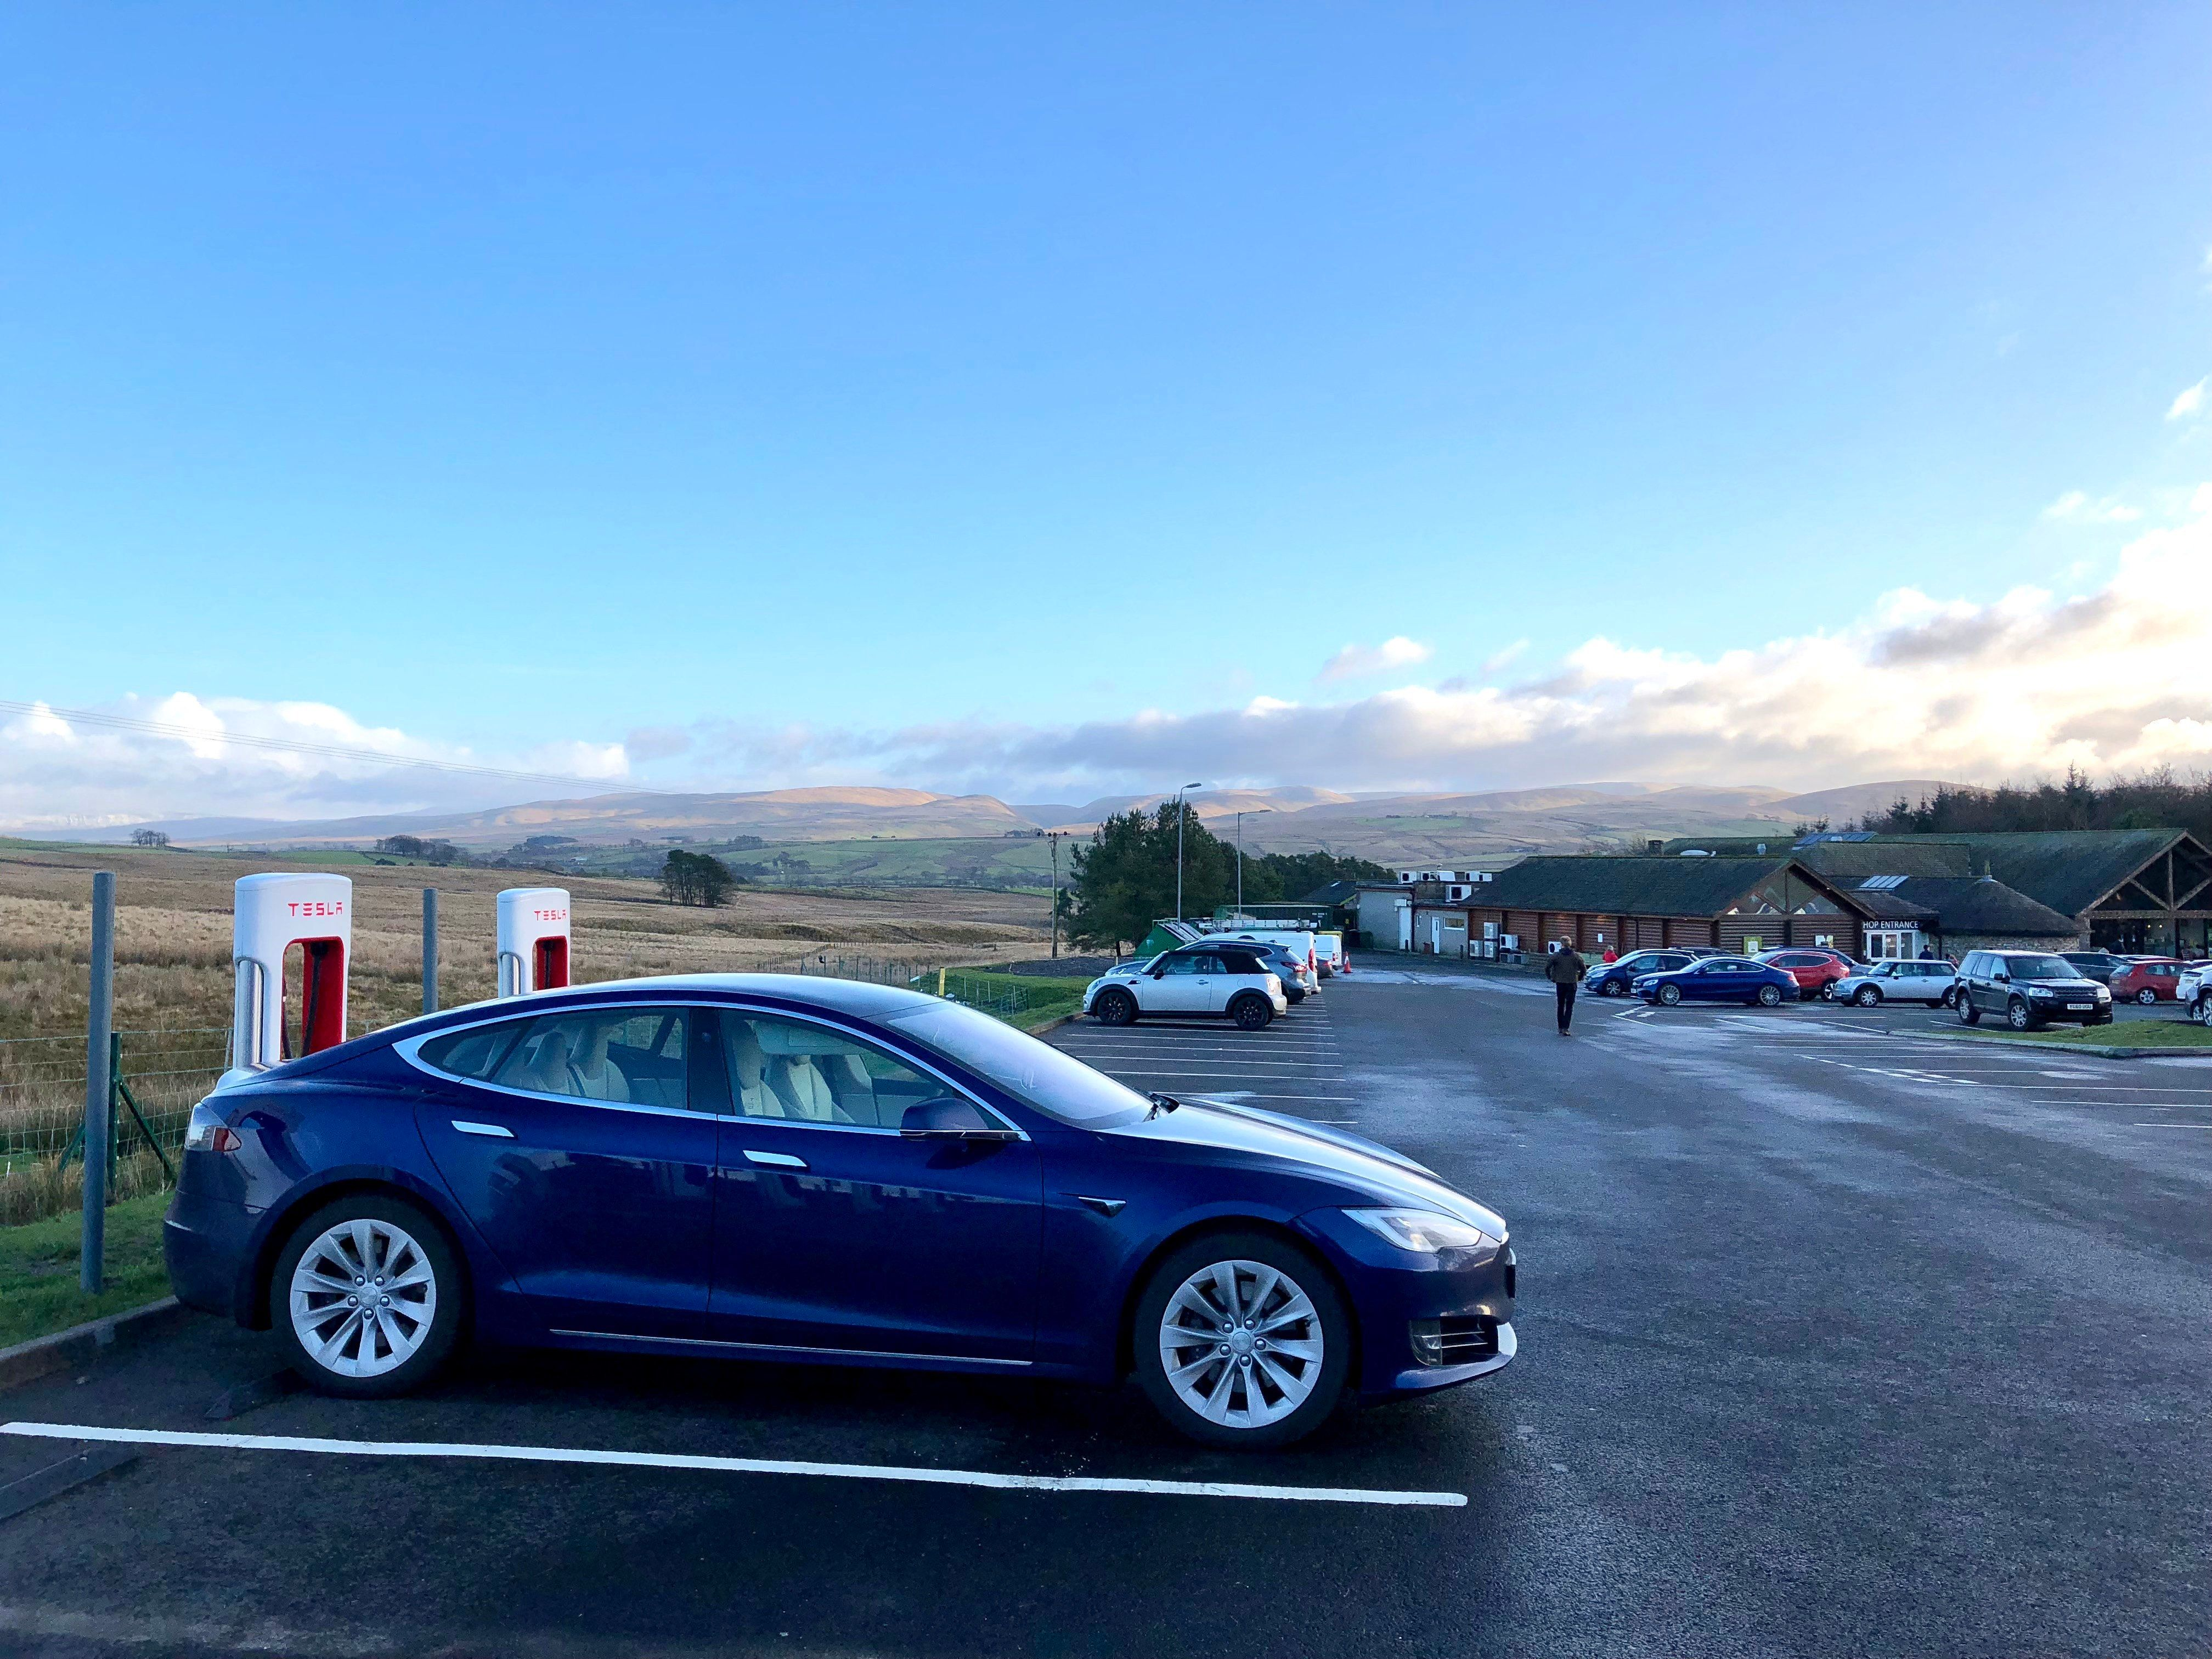 Tesla Model S: We Let An Electric Car Drive Itself 800 Miles, It Was Terrifying